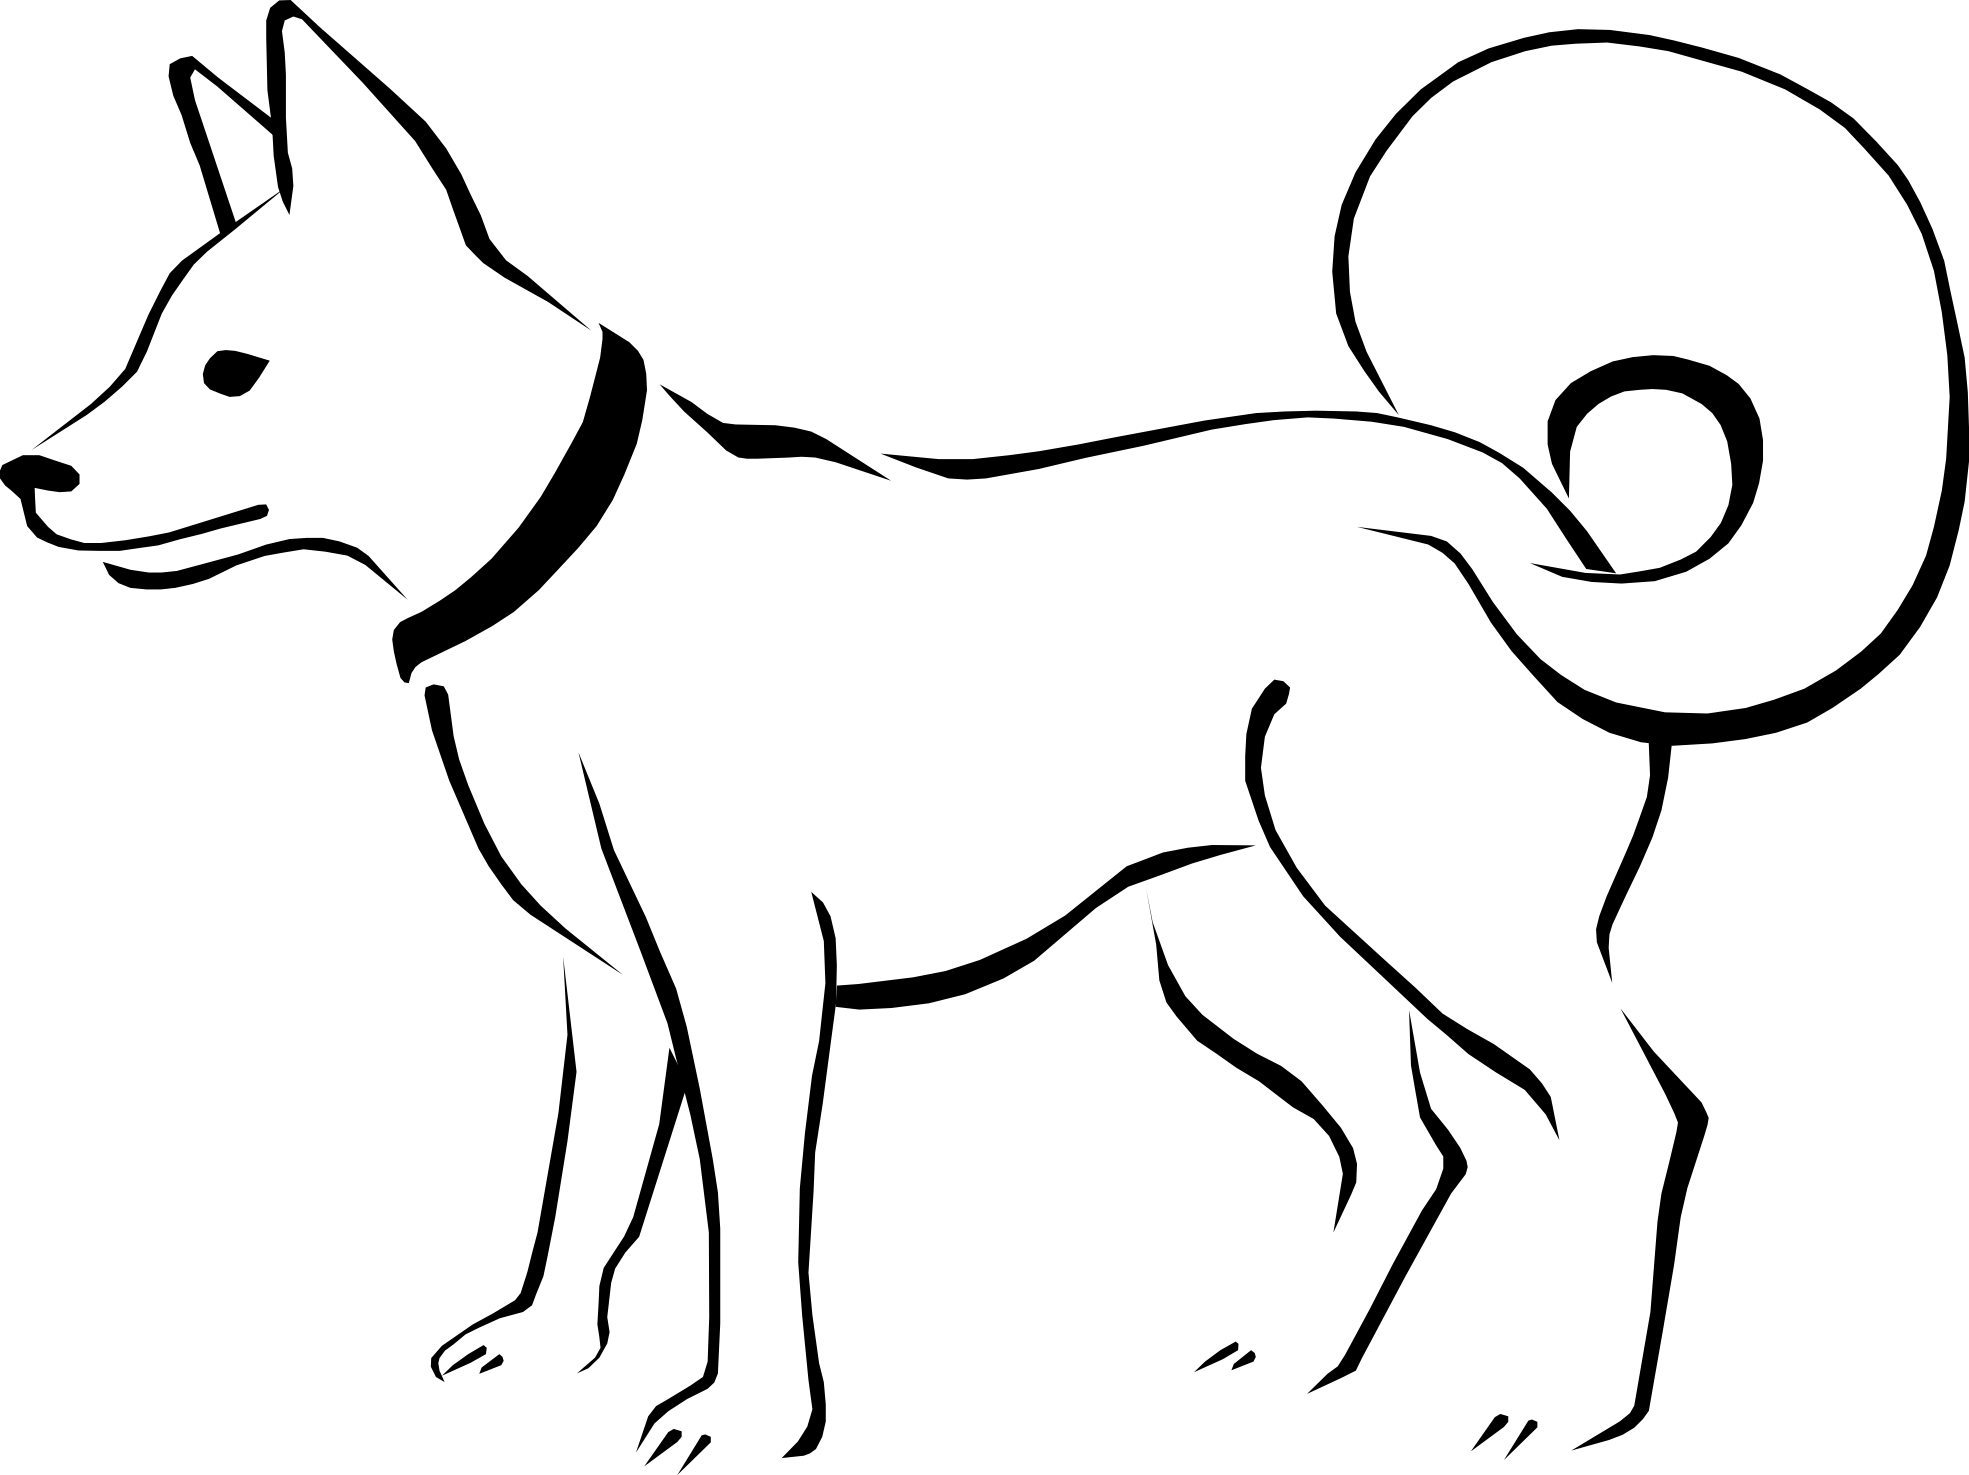 Dog dancing clipart. Black and white clip